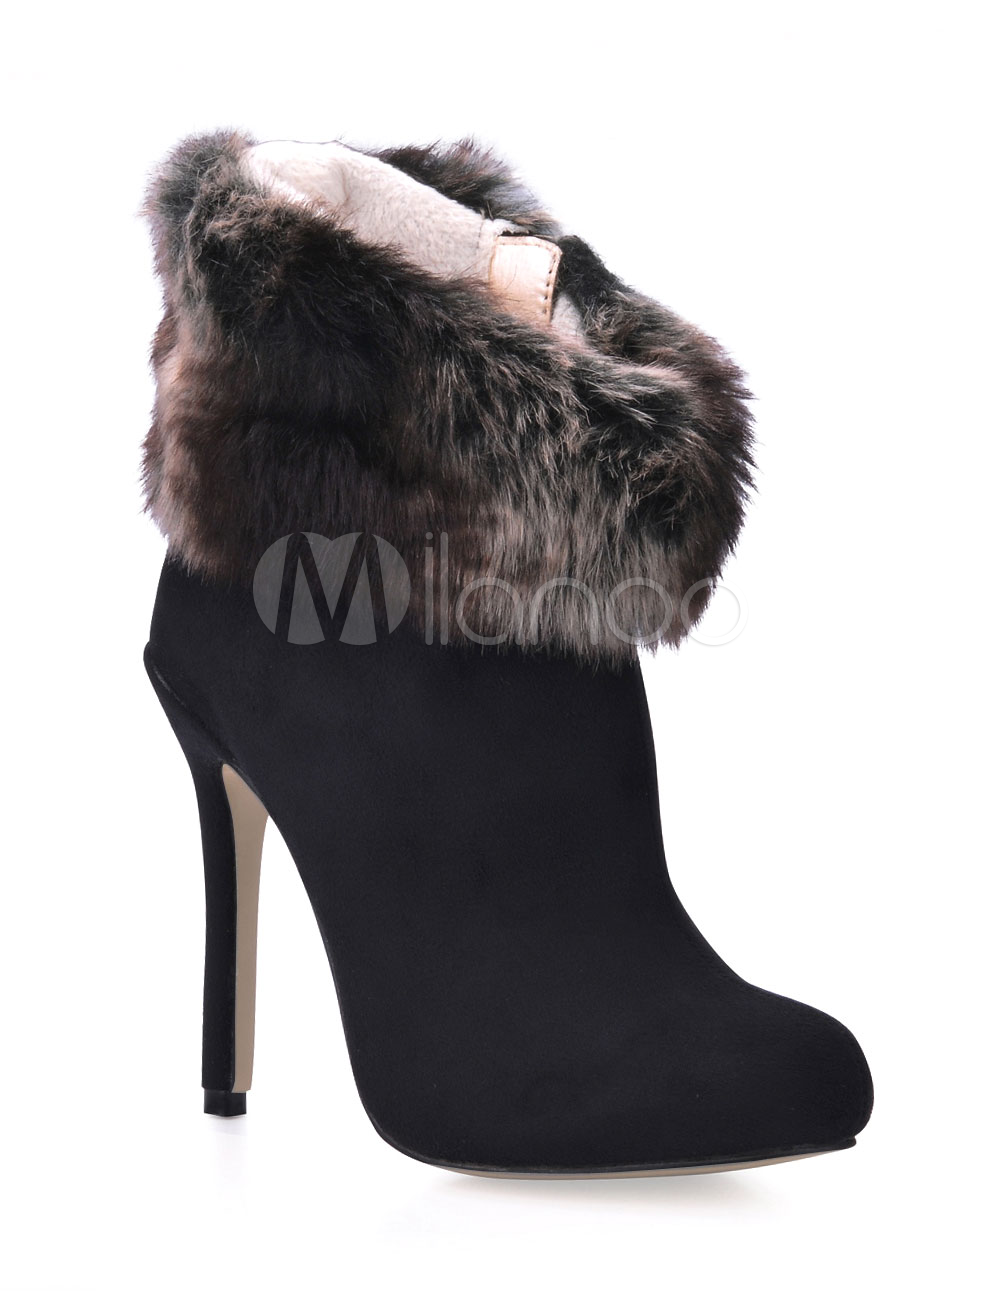 bffa9714e9db Elegant Black Furry Trim Stretch Satin Sanding Woman s High Heel ...